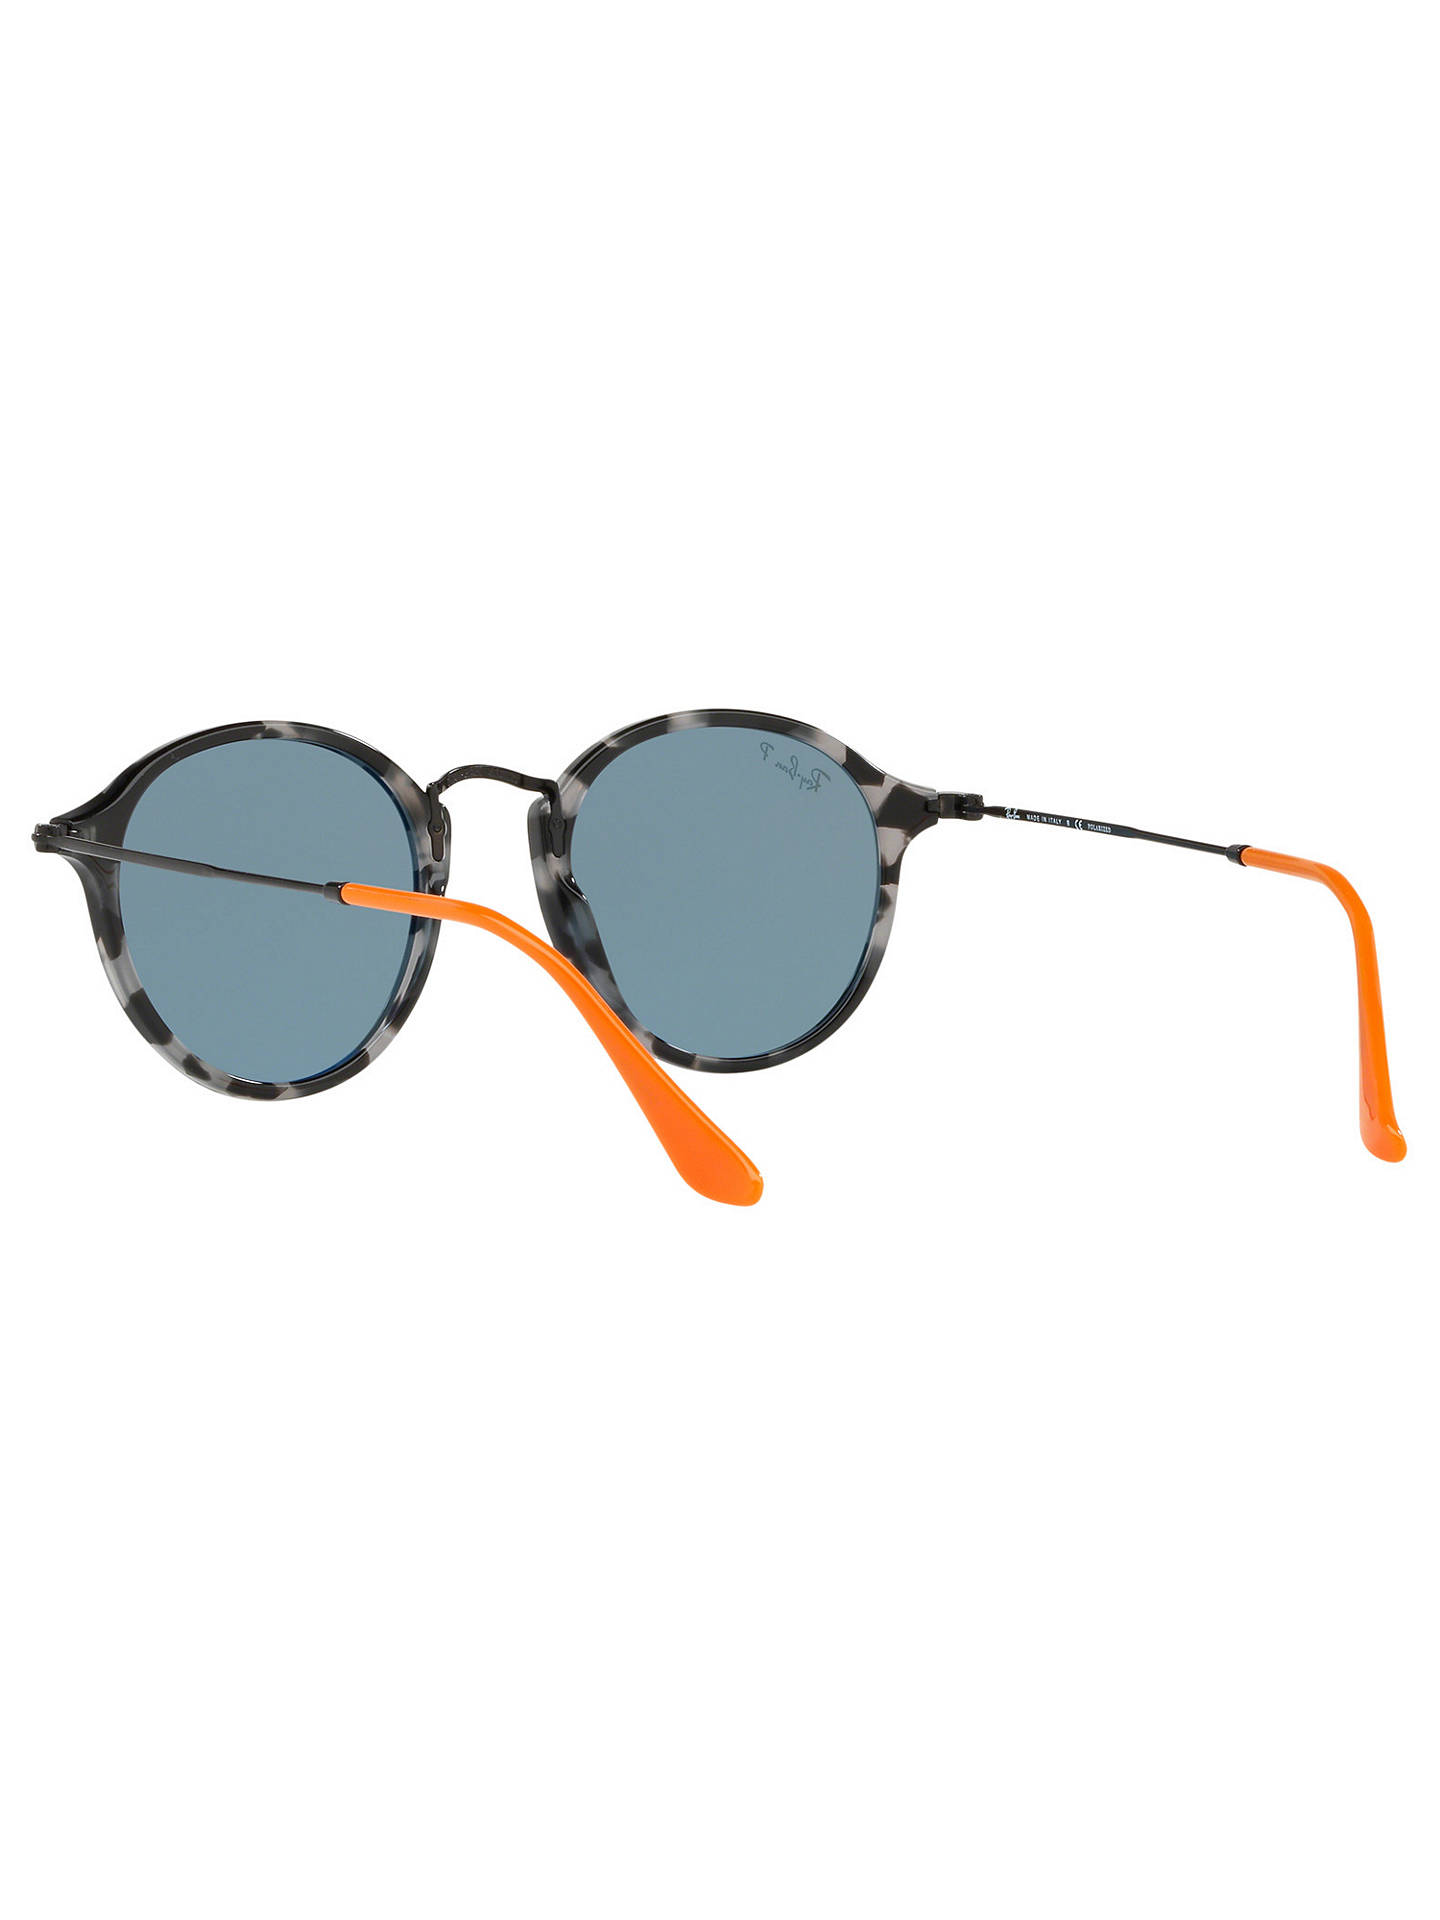 Buy Ray-Ban RB2447 Men's Round Sunglasses, Grey Tortoise/Blue Online at johnlewis.com